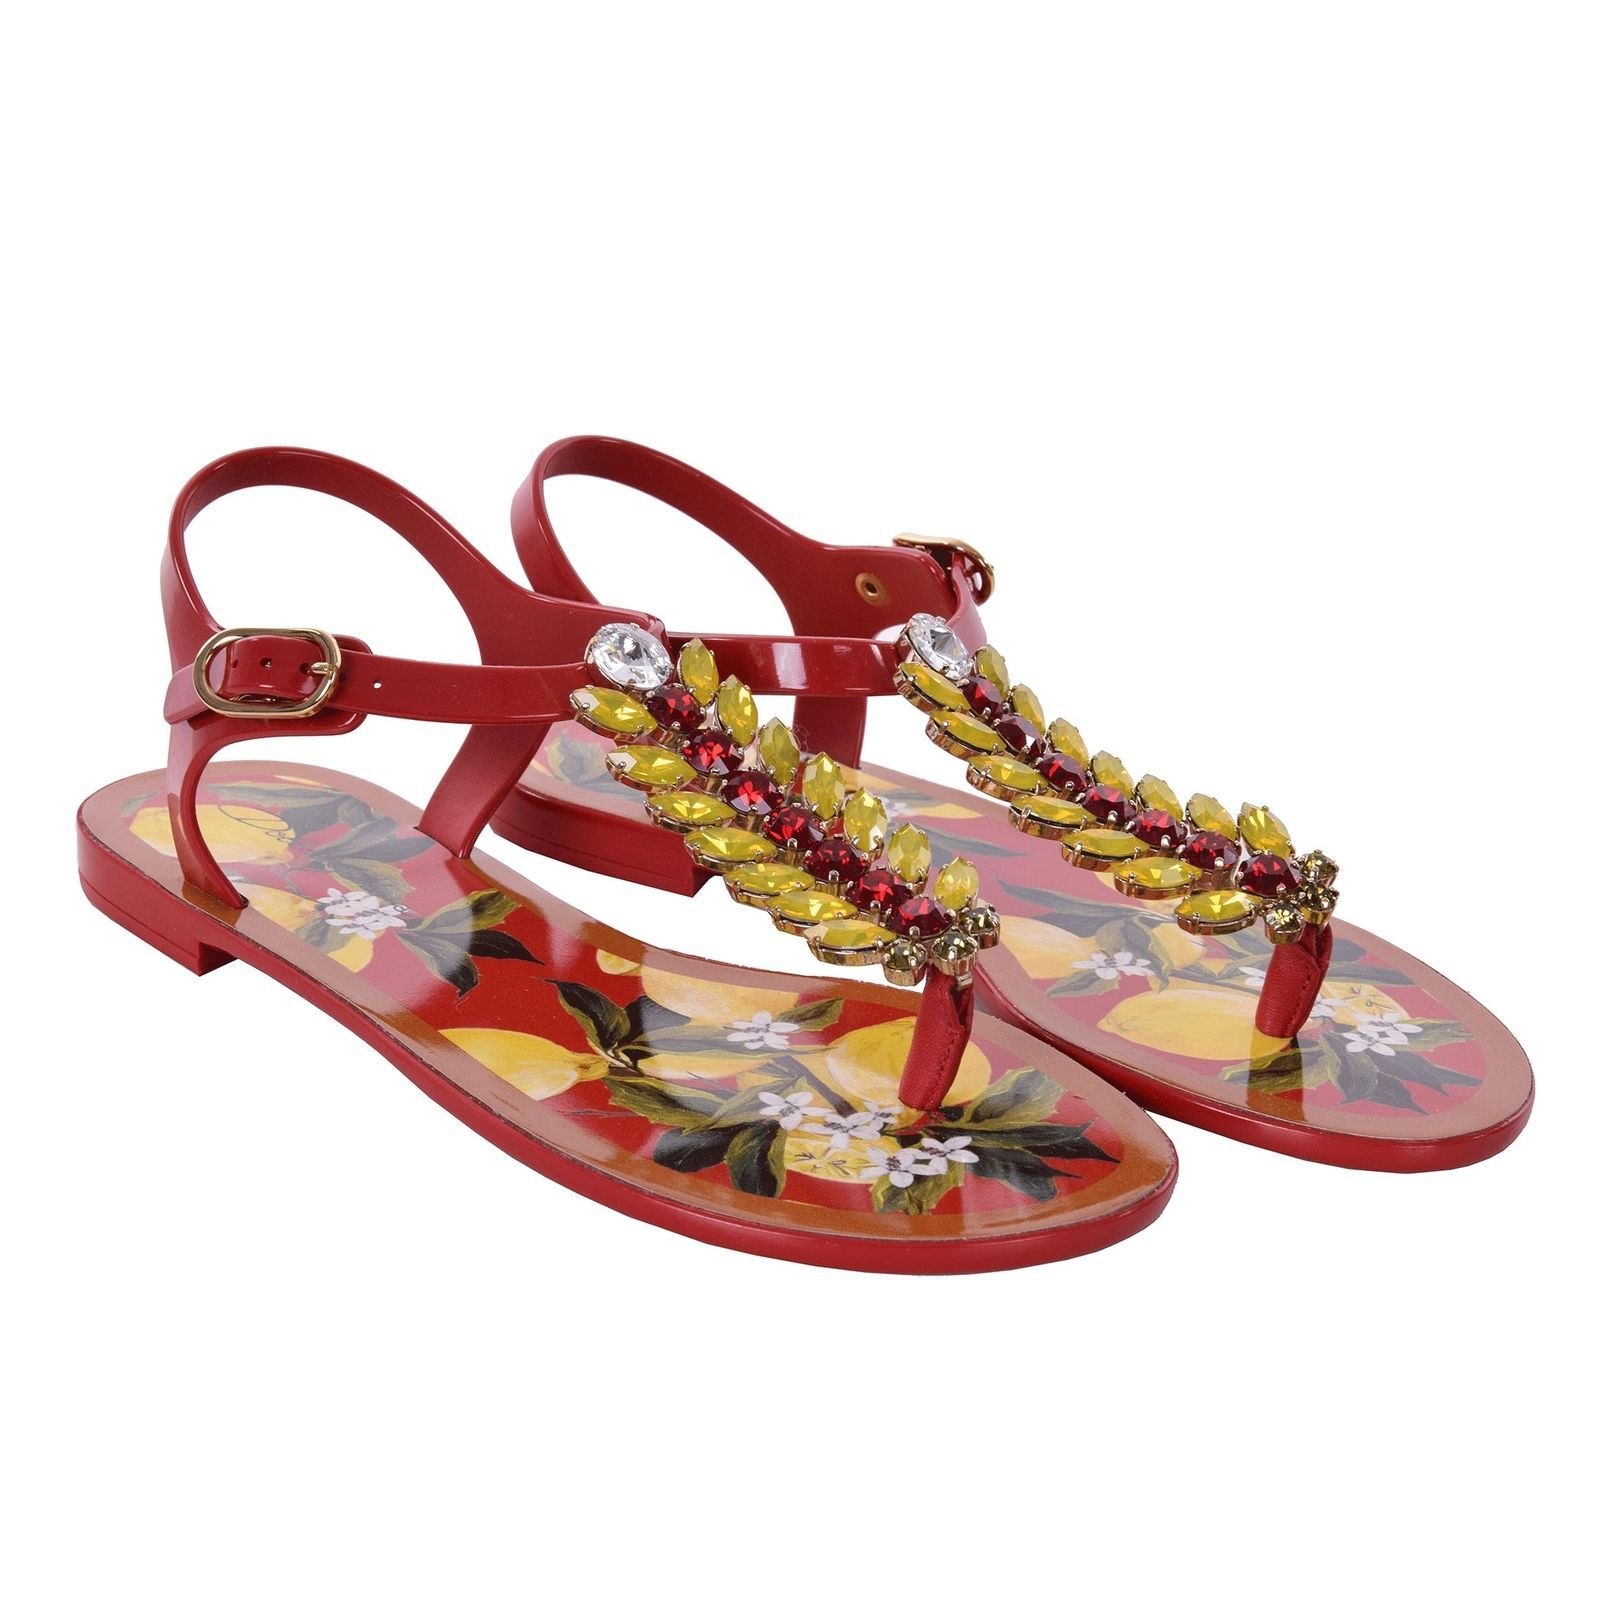 48ae511db1fe DOLCE   GABBANA Sicily Lemon Strap Crystals Sandals Shoes INFRADITO Red  06748